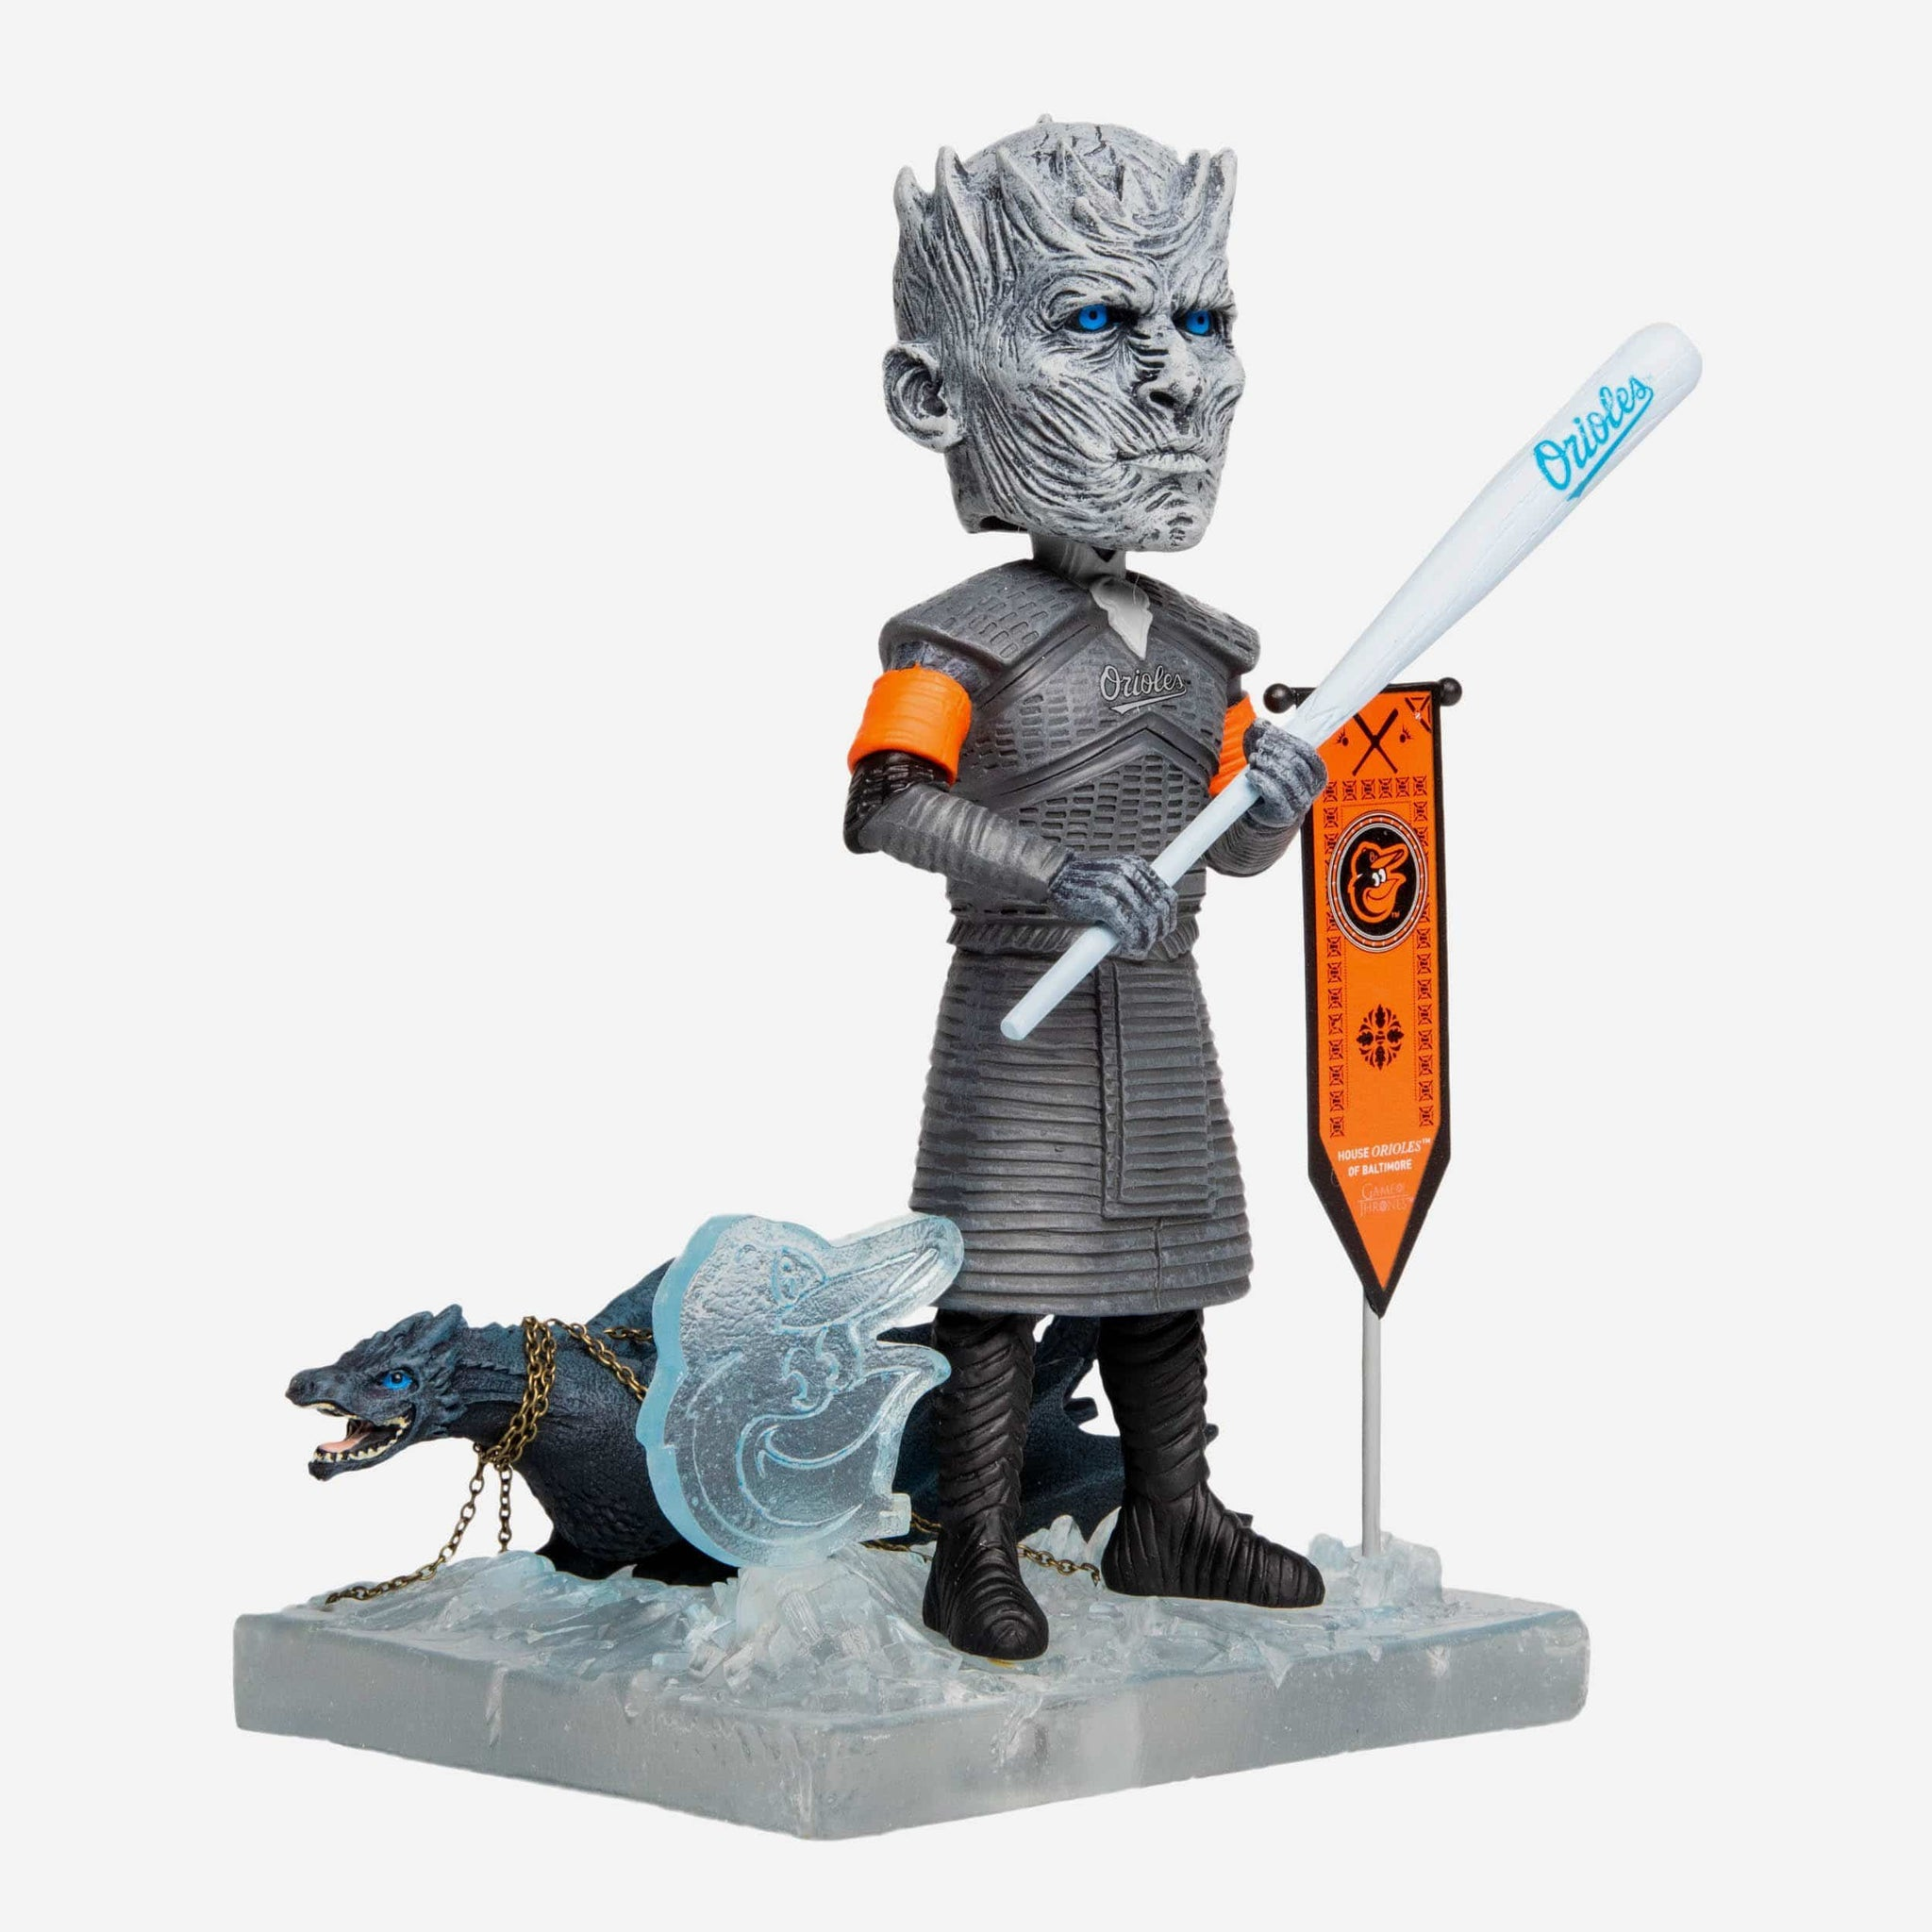 Baltimore Orioles Game Of Thrones Night King Bobblehead FOCO - FOCO.com